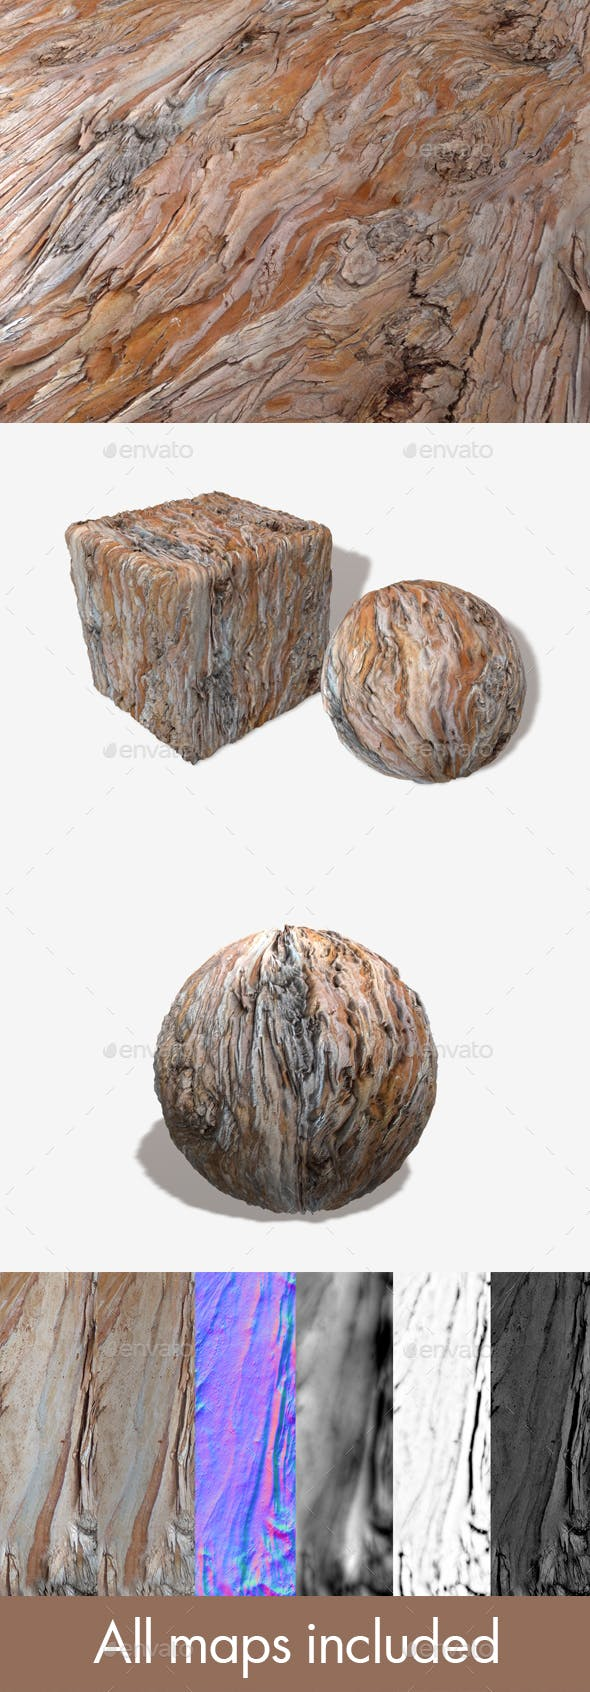 Wavy Bark 1 Seamless Texture - 3DOcean Item for Sale